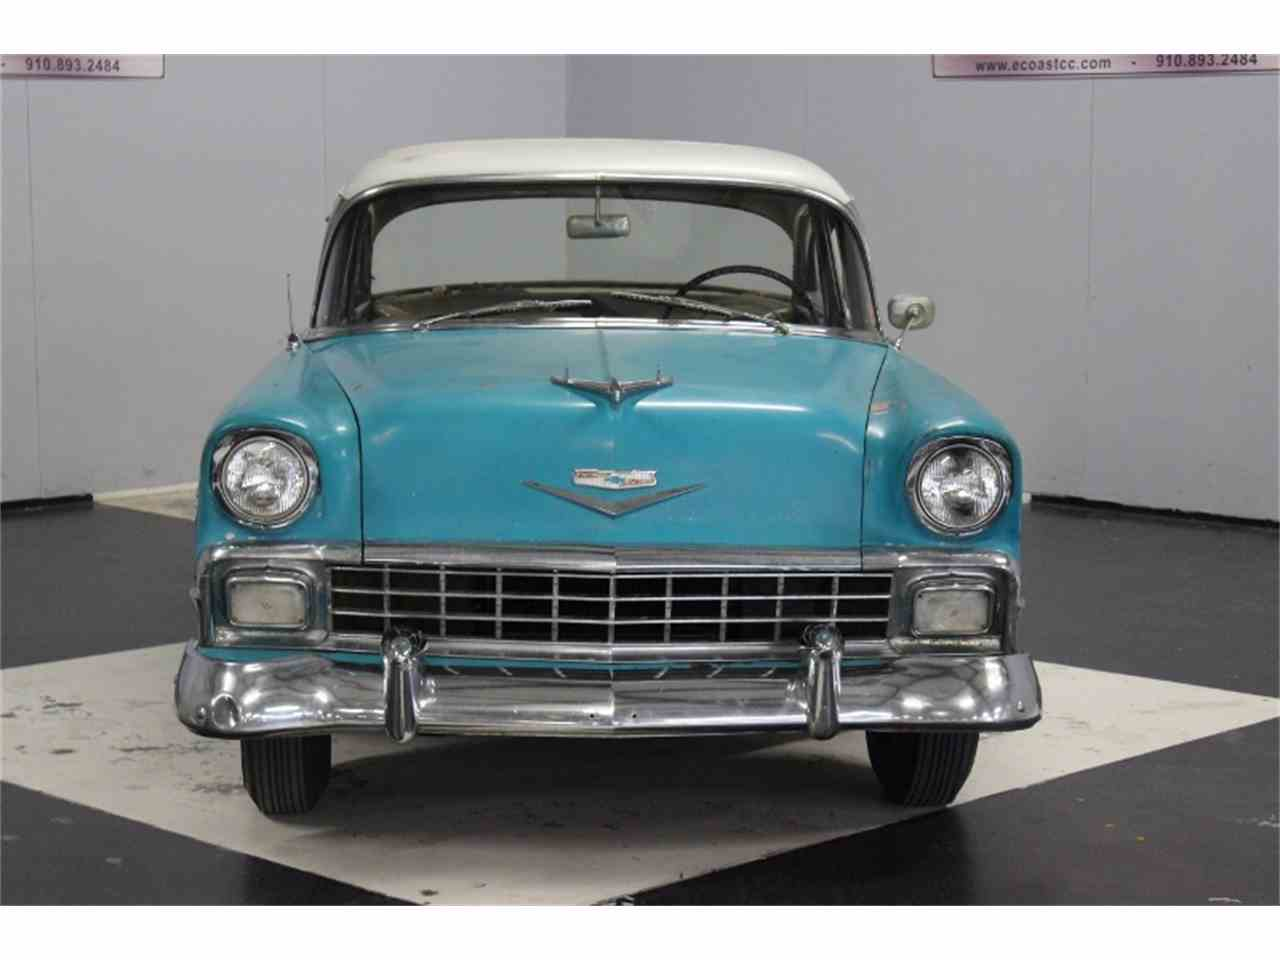 1956 chevrolet bel air for sale on classiccars com 74 - 1956 Chevrolet Bel Air For Sale Cc 1030439